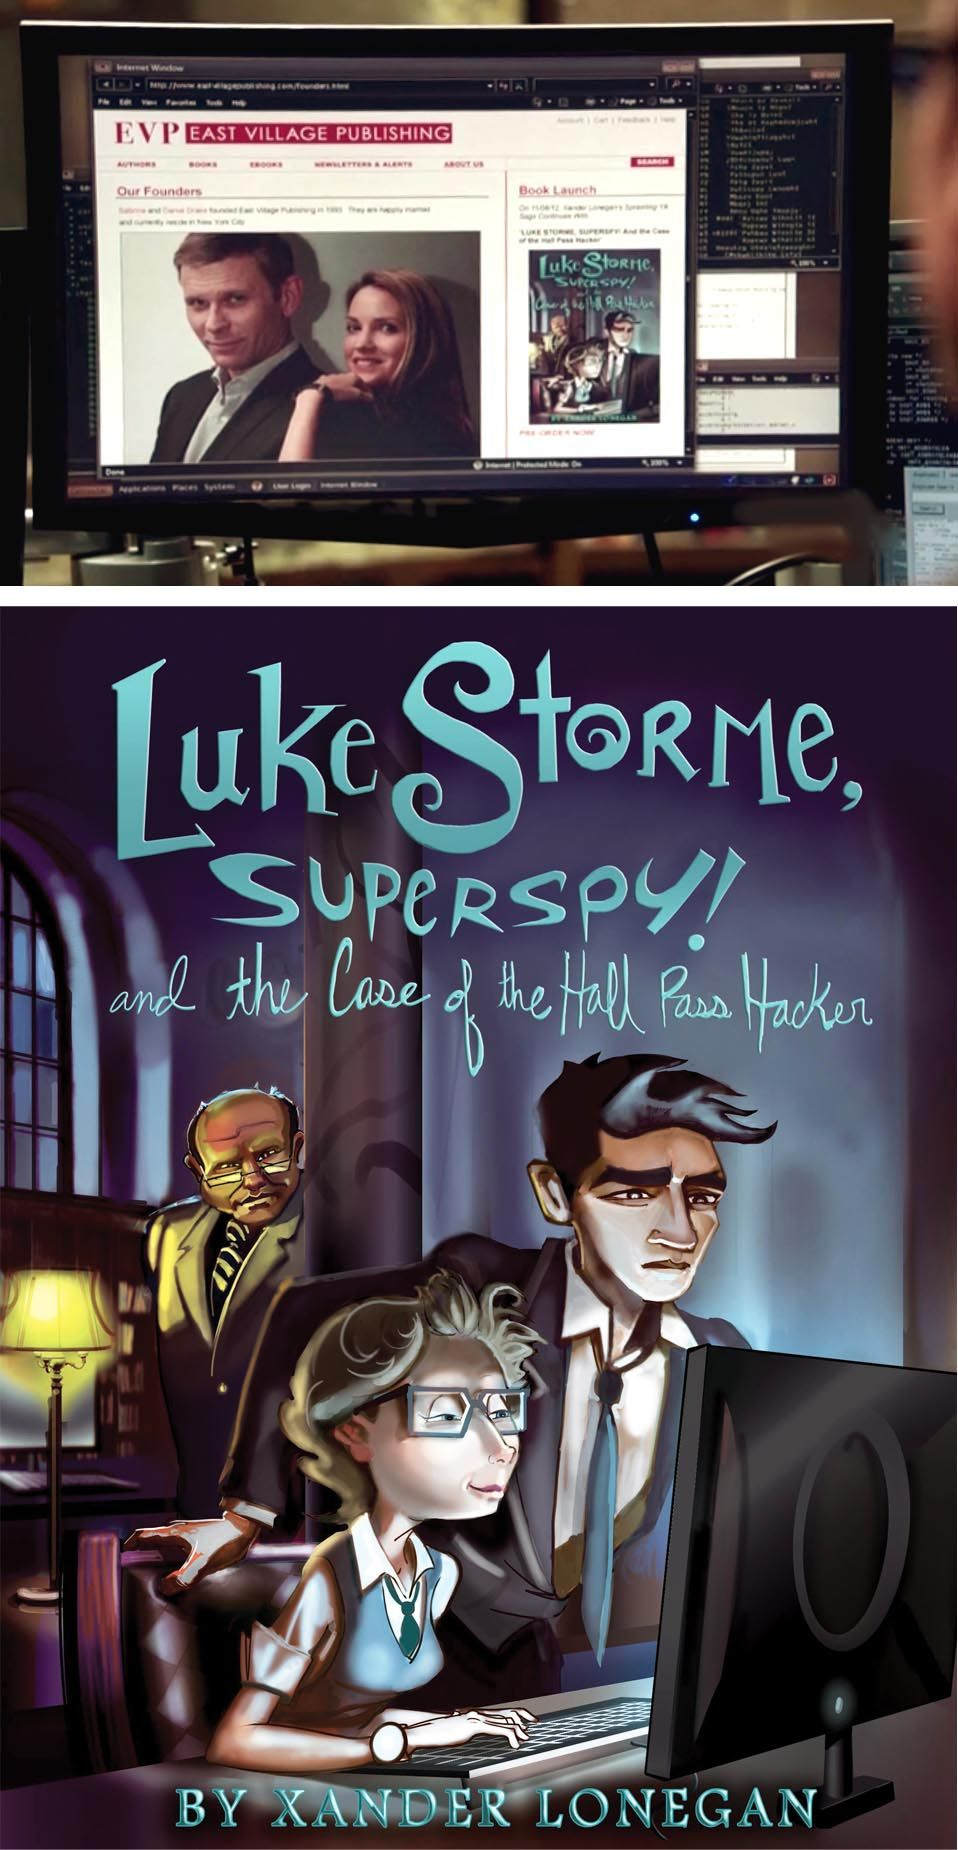 """""""Luke Storme, Superspy!"""" by Mike from The STUDIO for CBS's hit show - #PersonofInterest (Episode 208 """"Til Death"""")"""